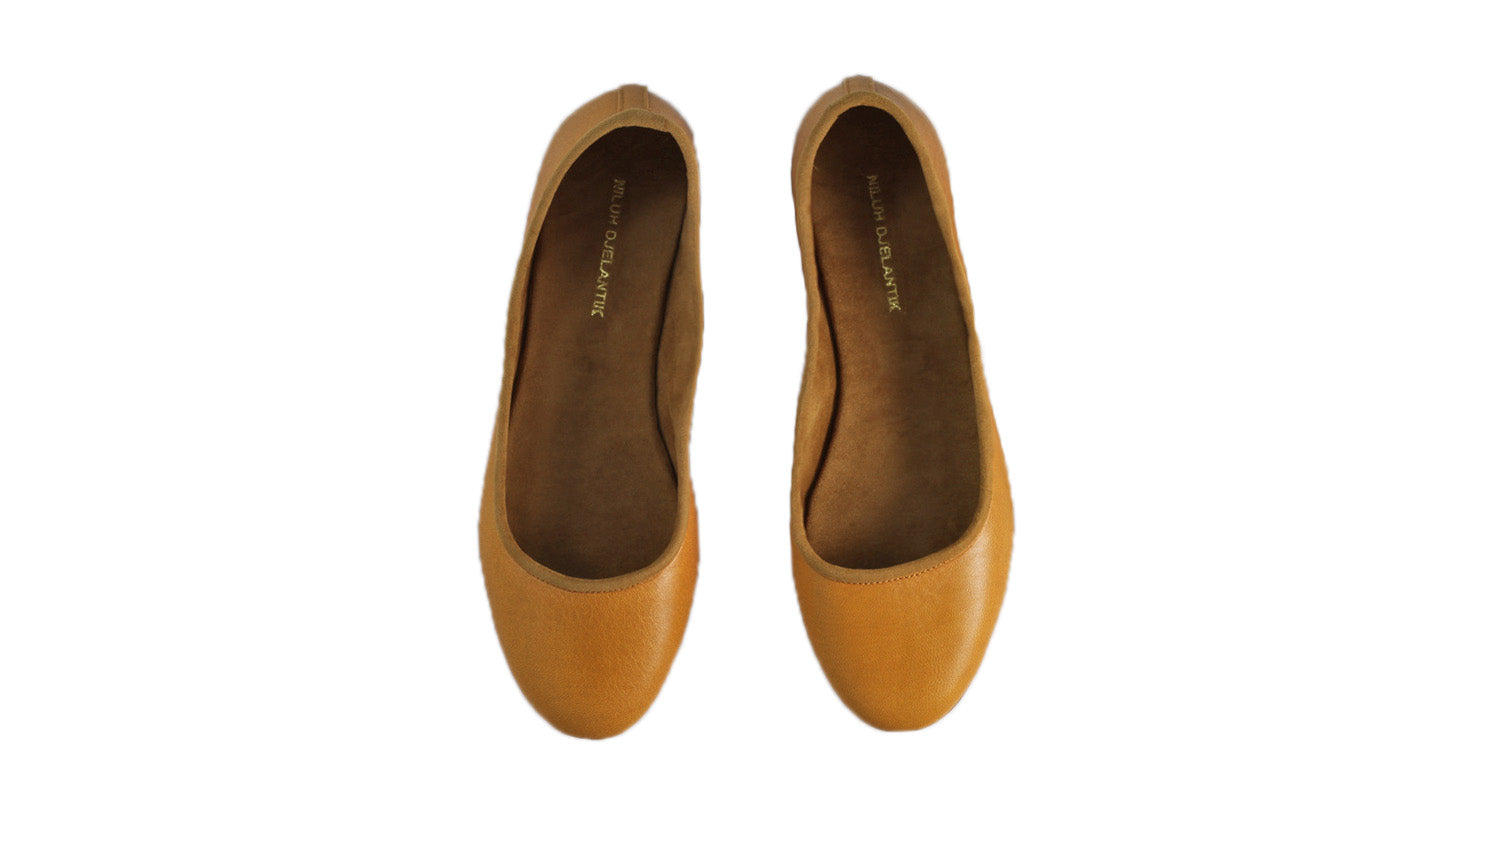 Leather-shoes-Kate 20mm Ballet - Camel-flats ballet-NILUH DJELANTIK-NILUH DJELANTIK